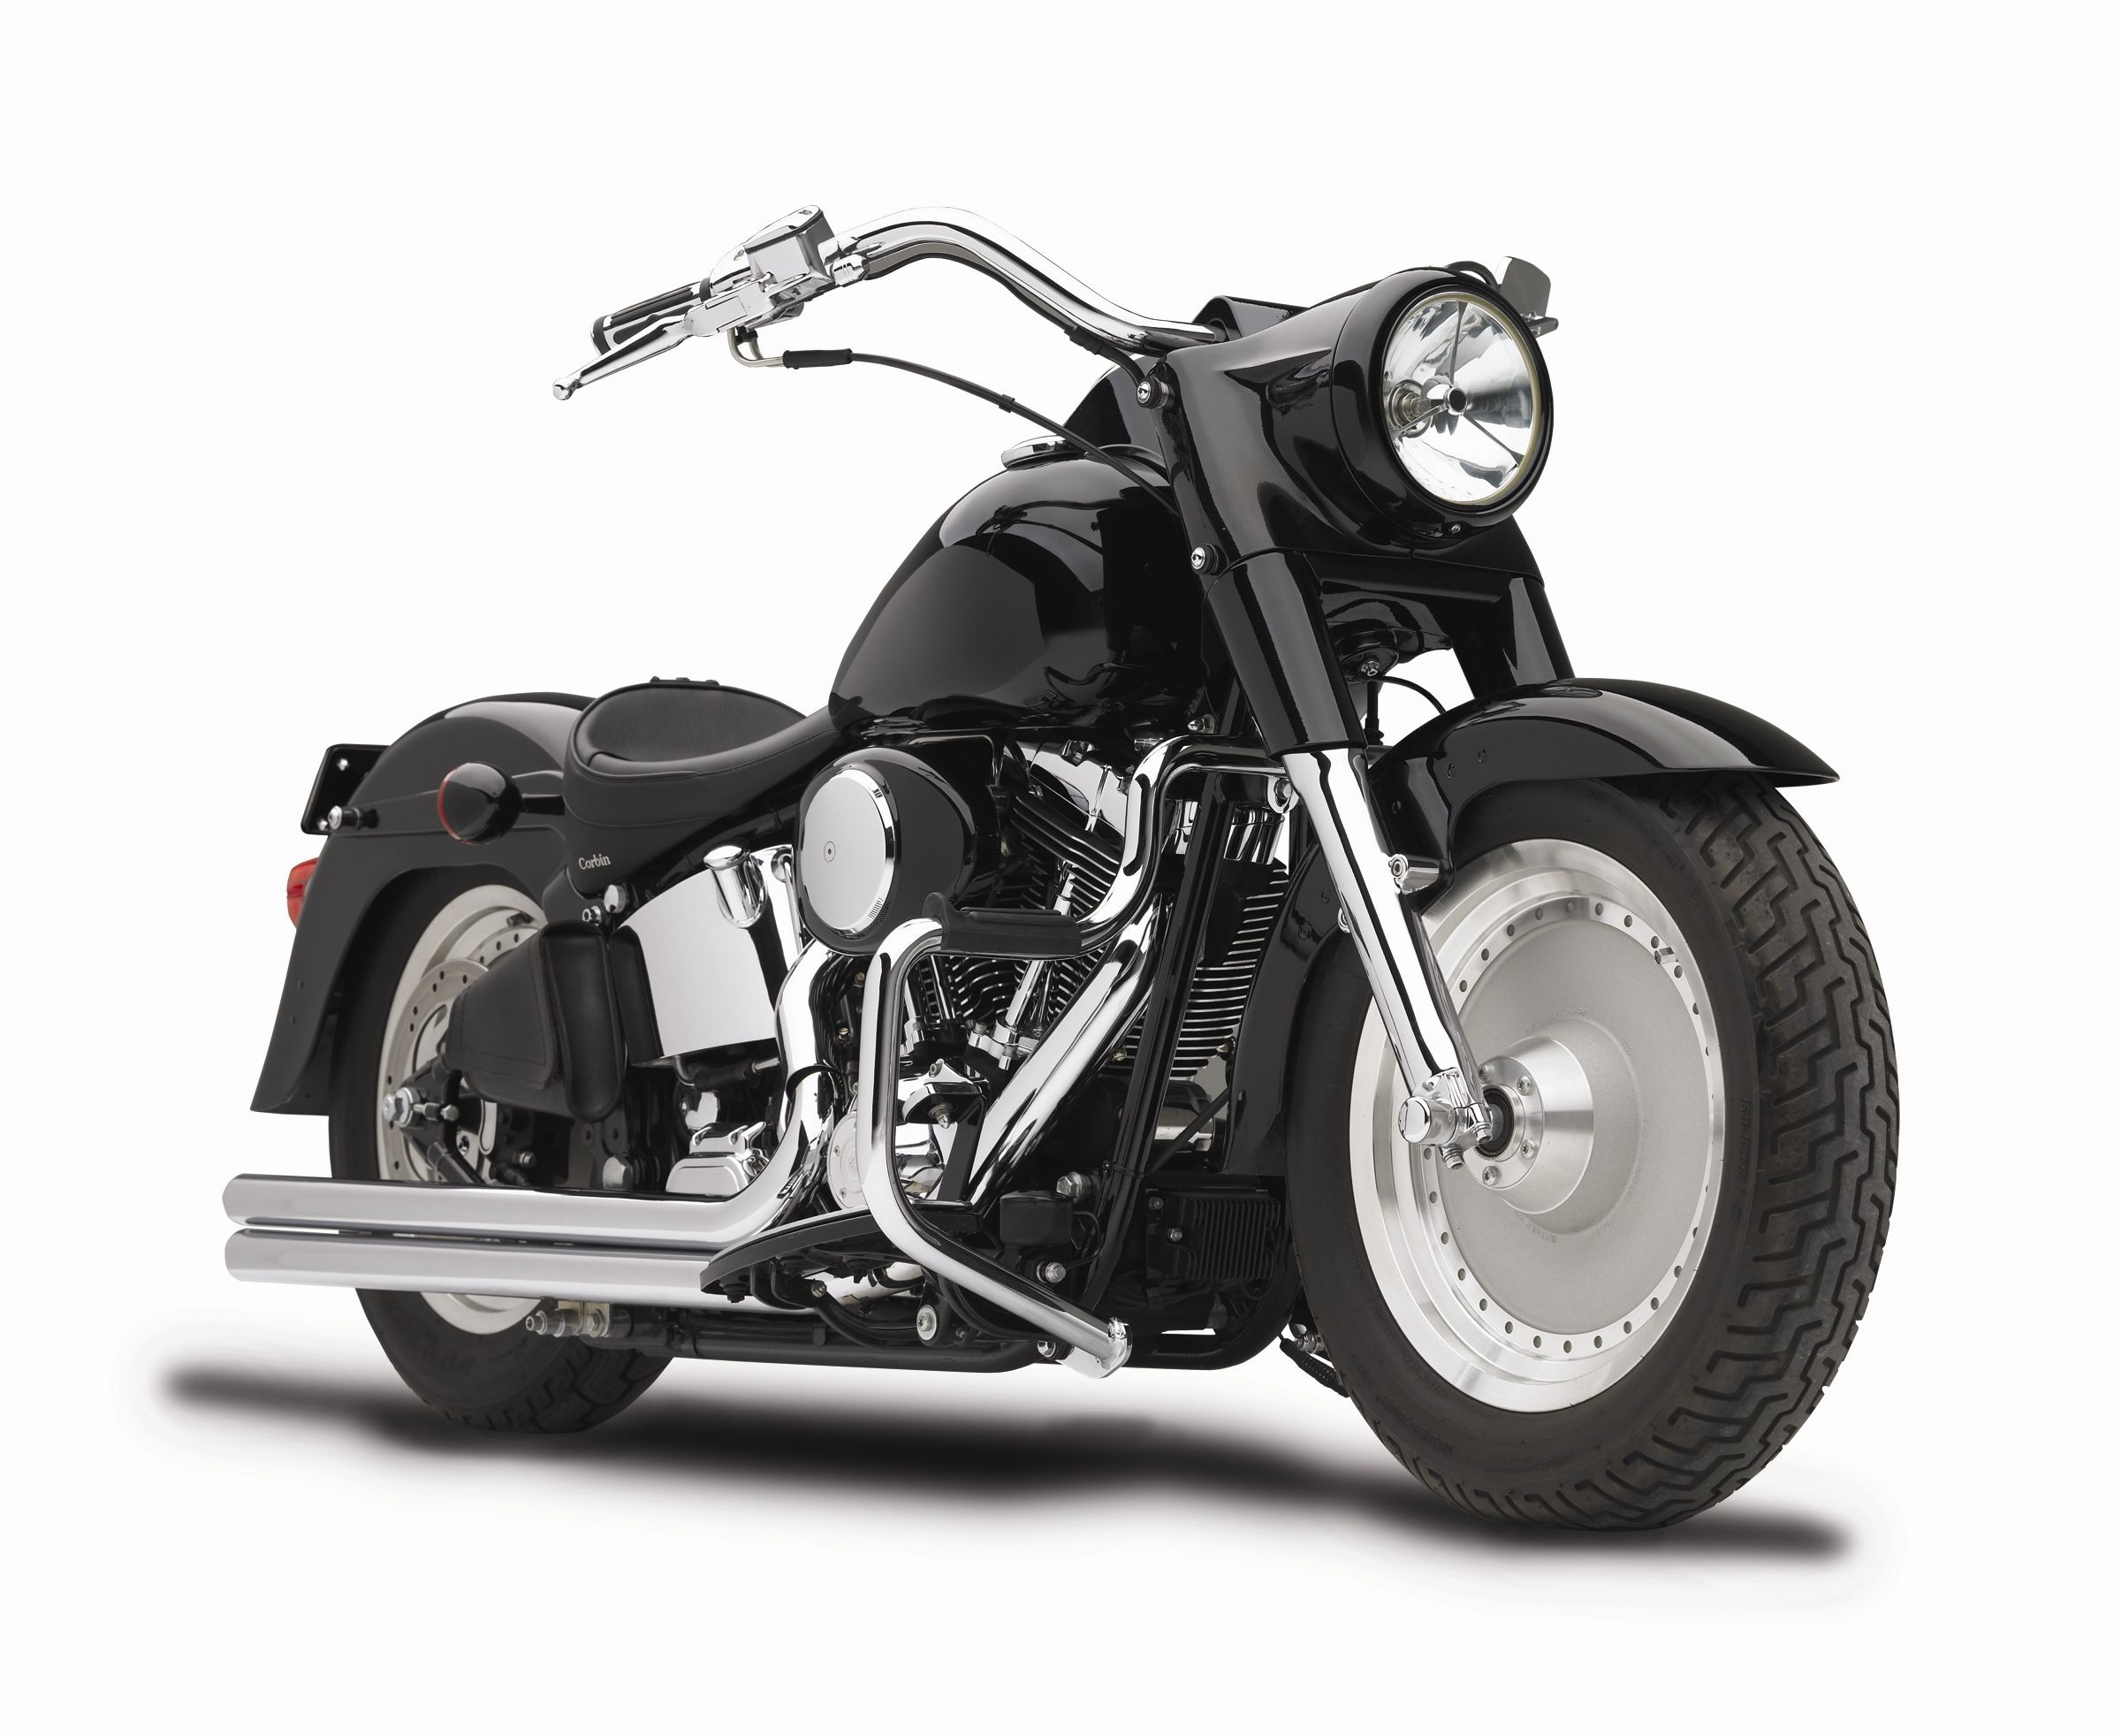 Harley-Davidson-Fatboy-Custom-wallpaper-wp5008382